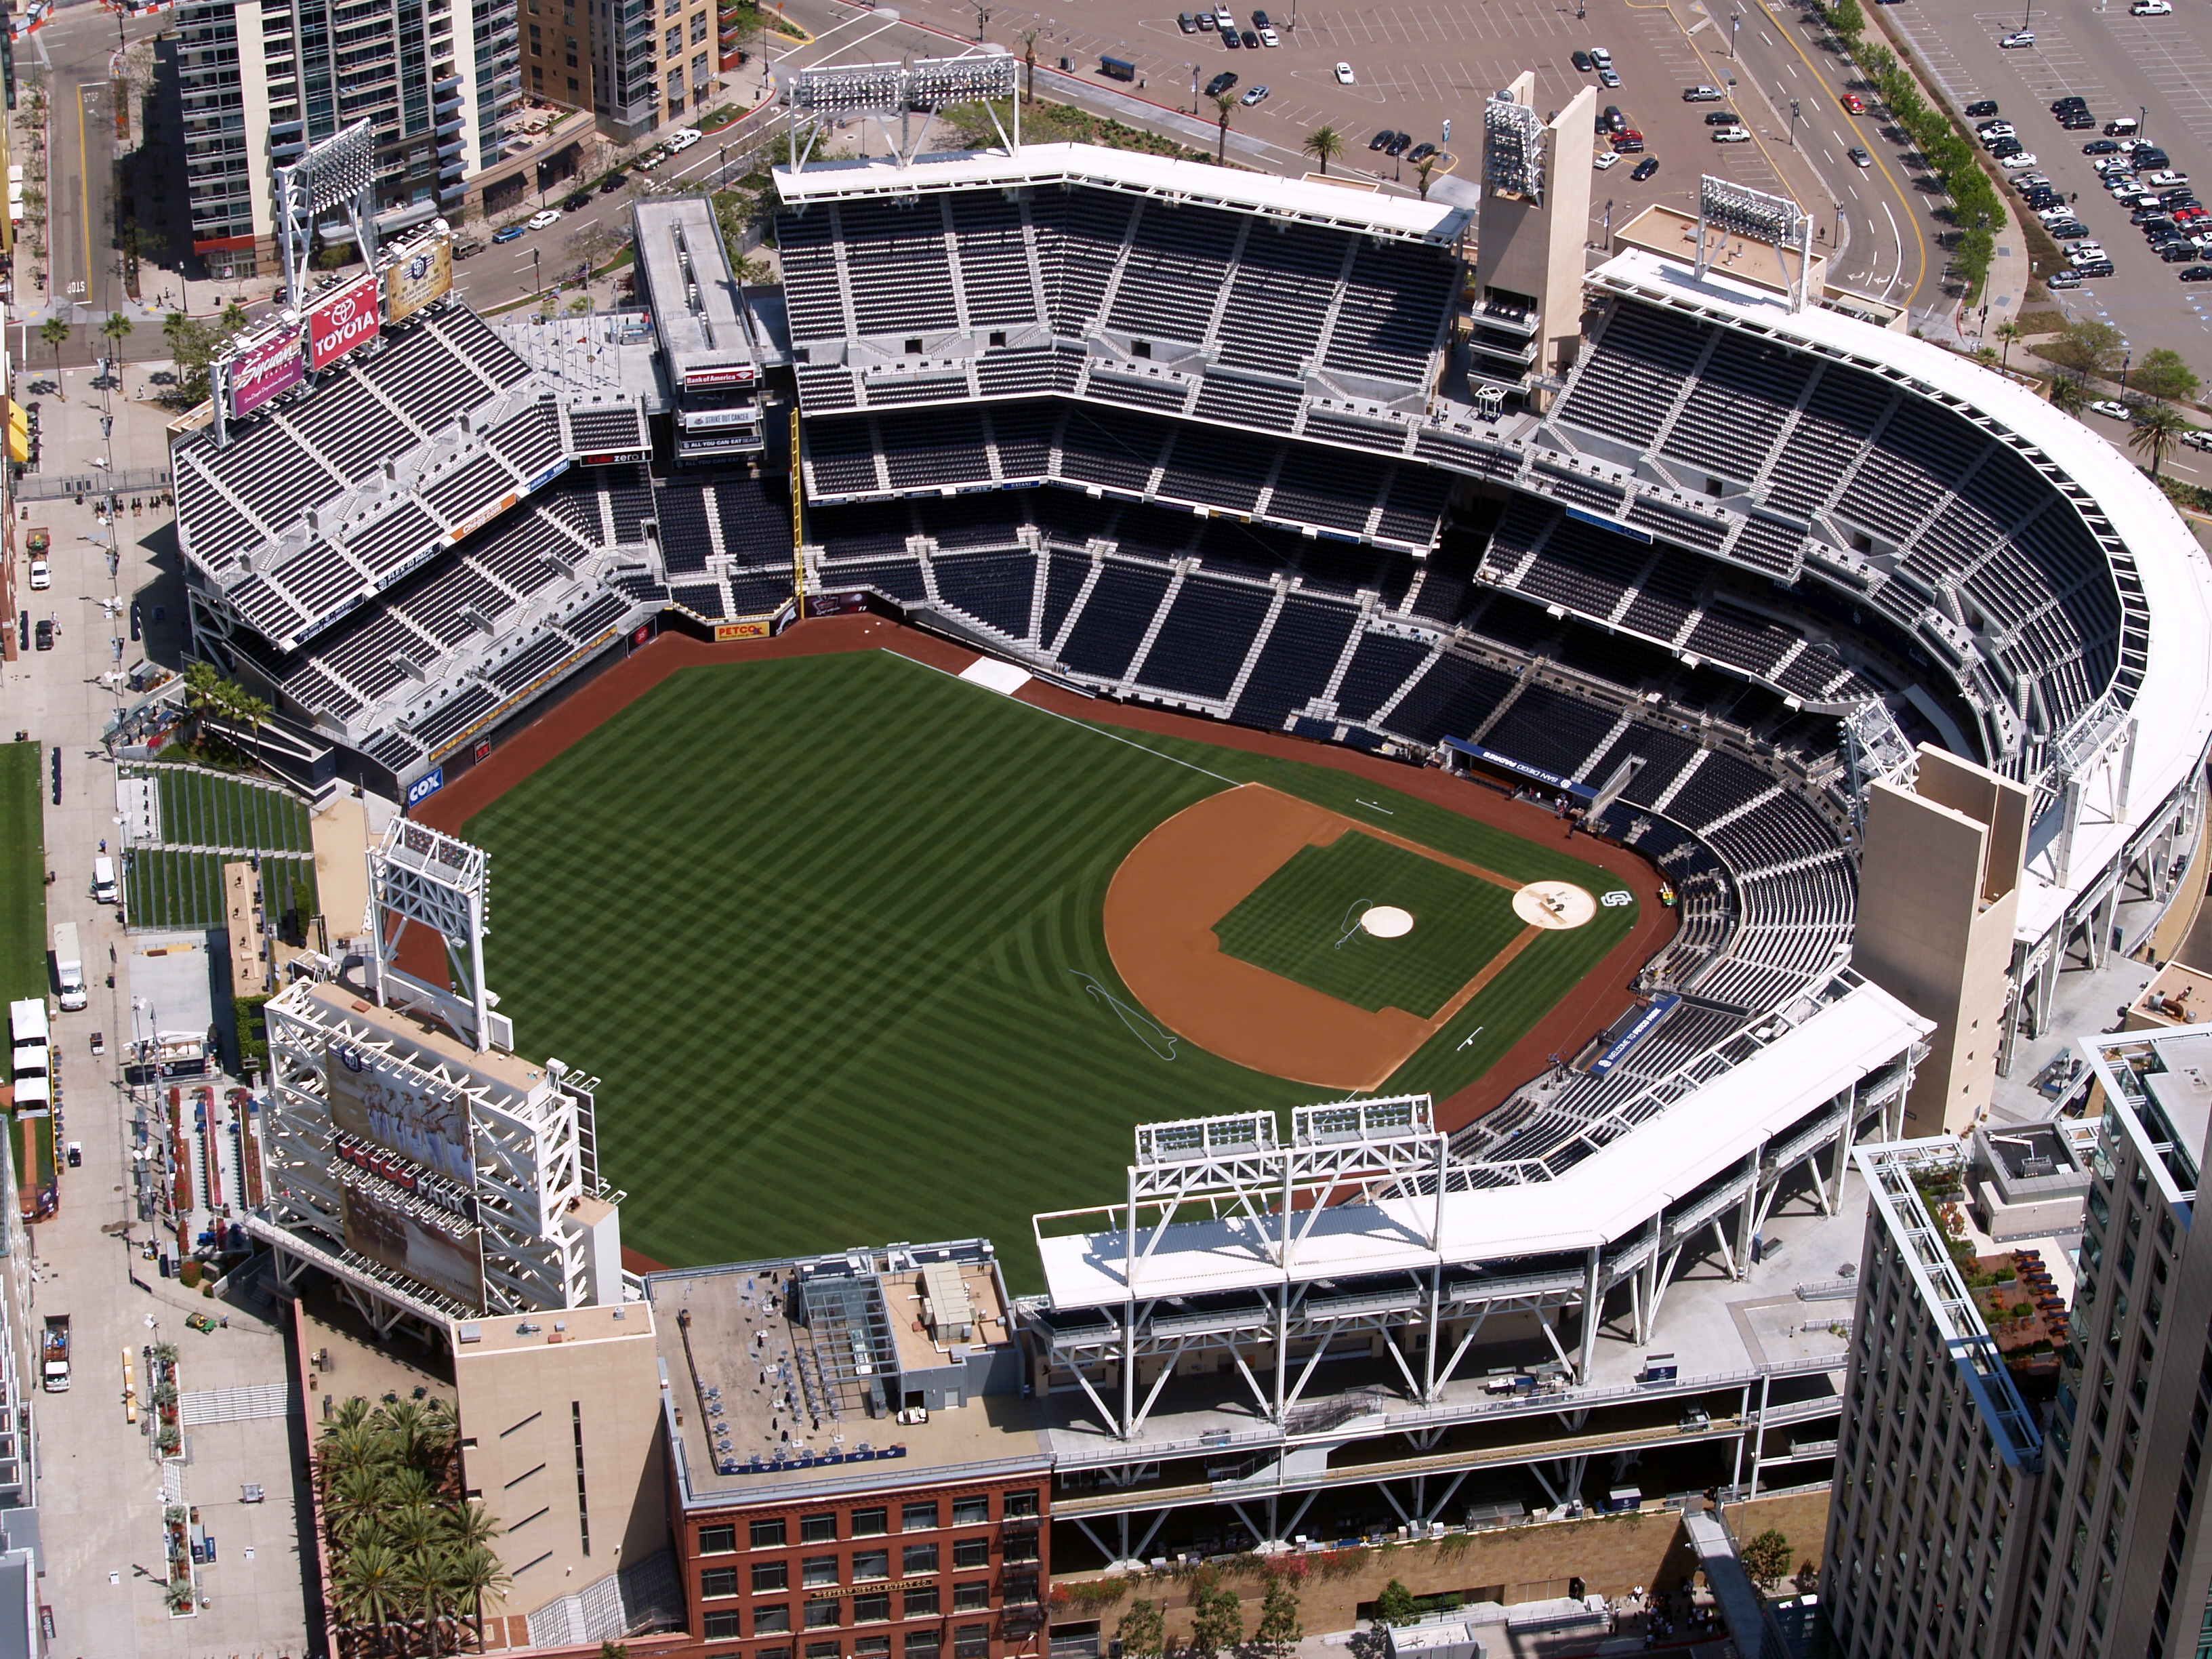 19 Best PETCO Park Images On Pinterest